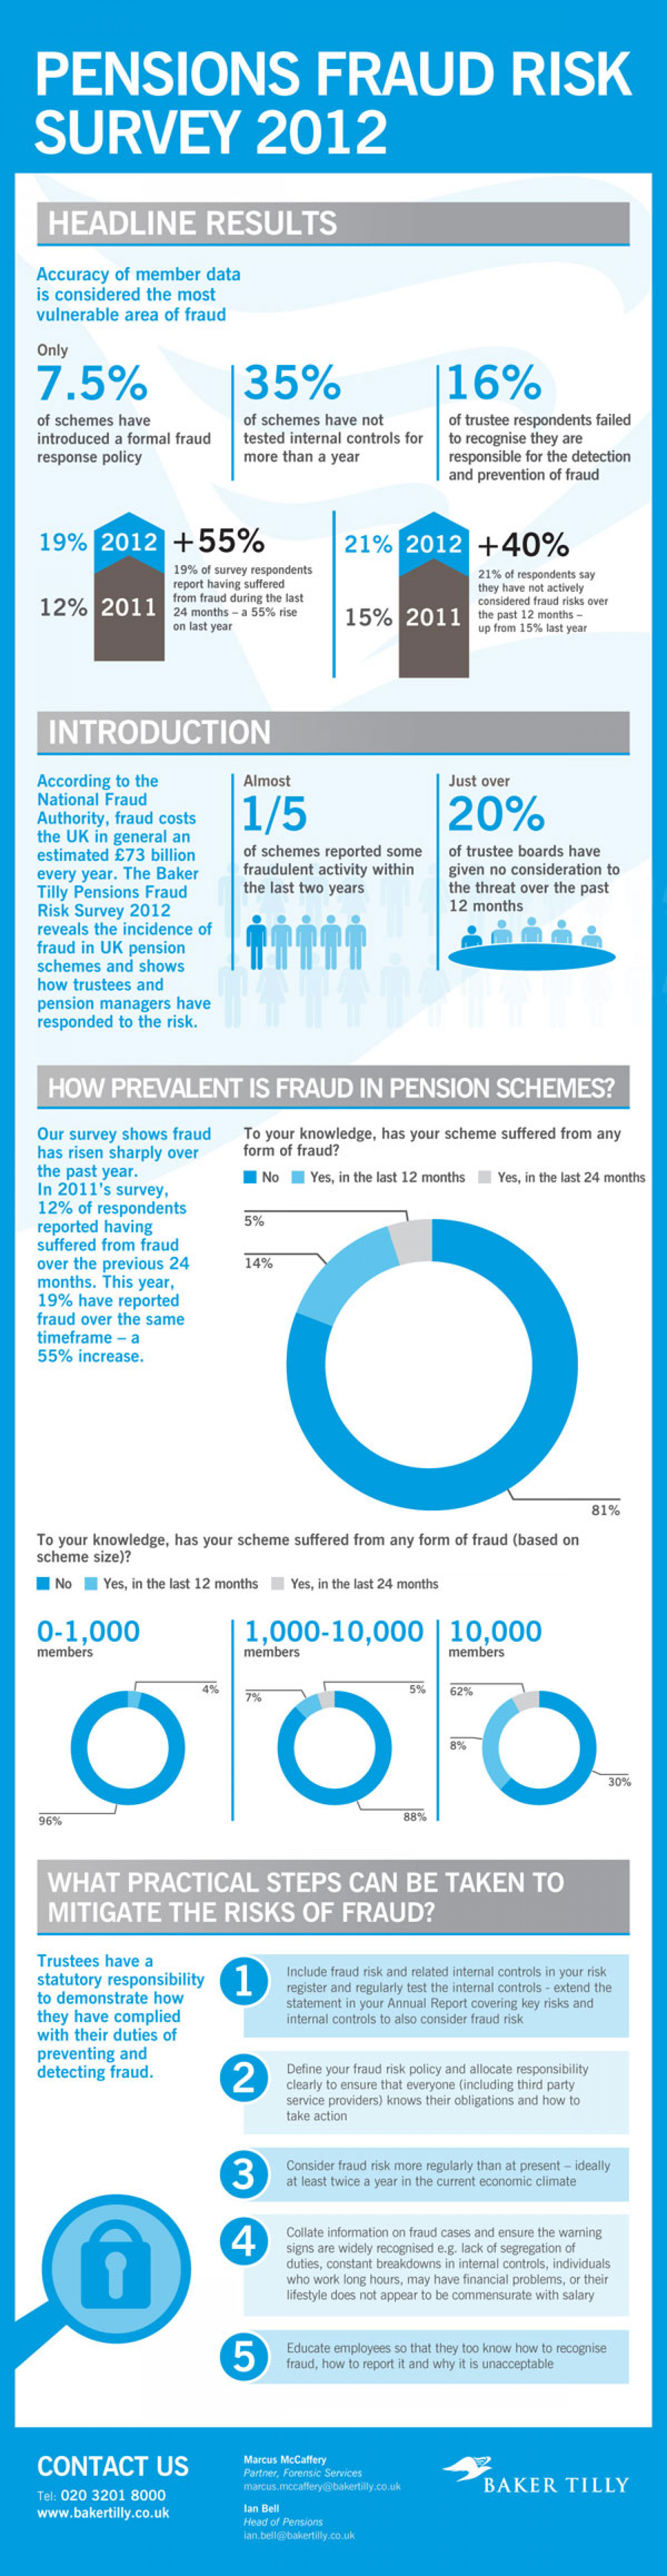 Pensions Fraud Risk Infographic